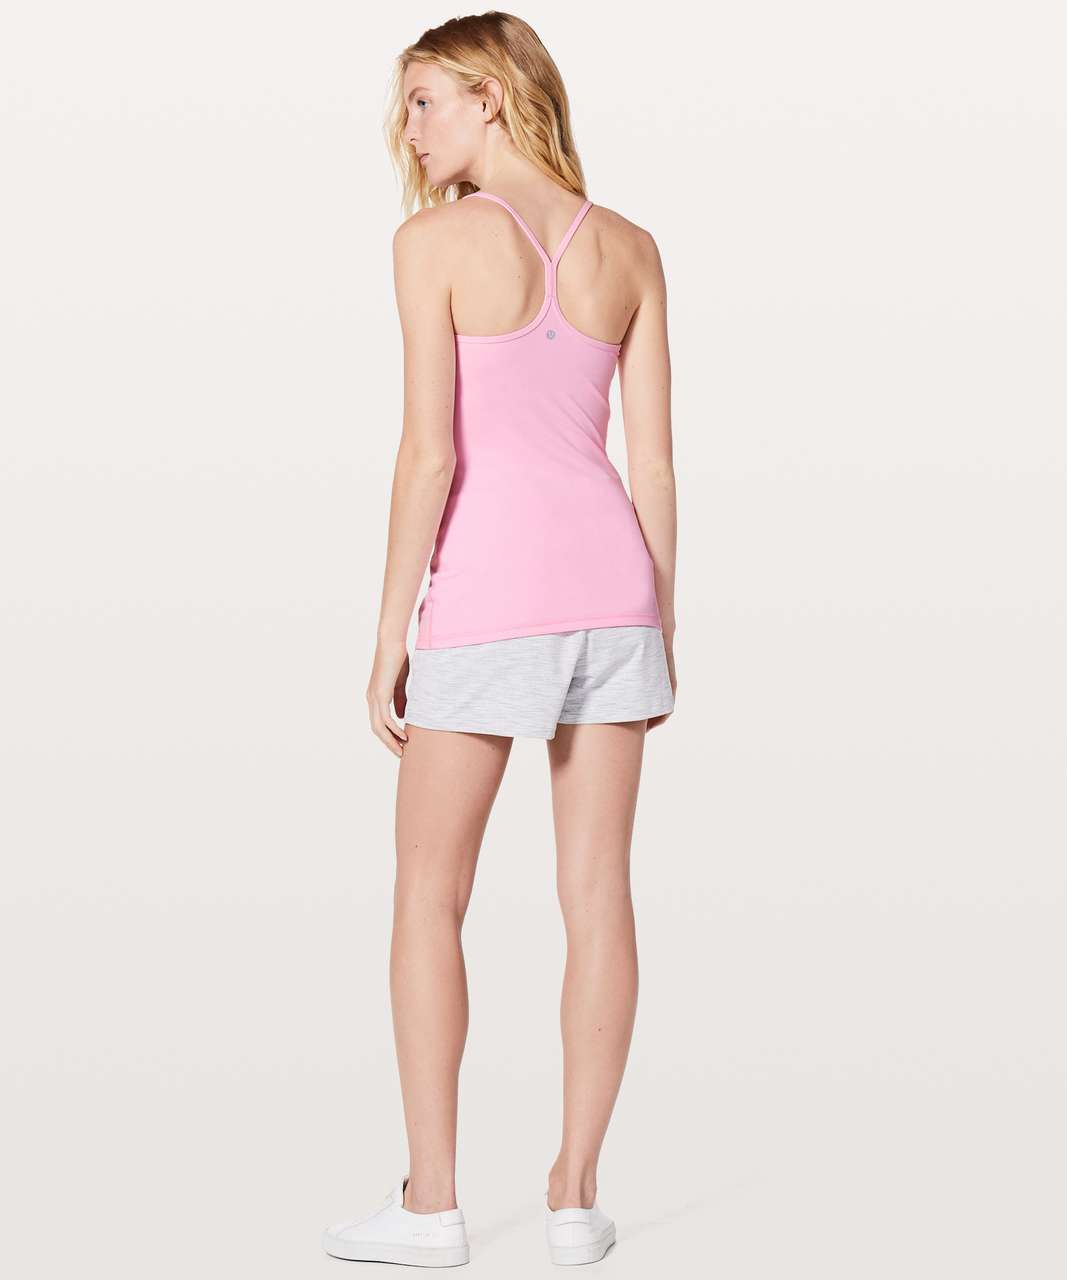 Lululemon Power Y Tank *Luon - Miami Pink